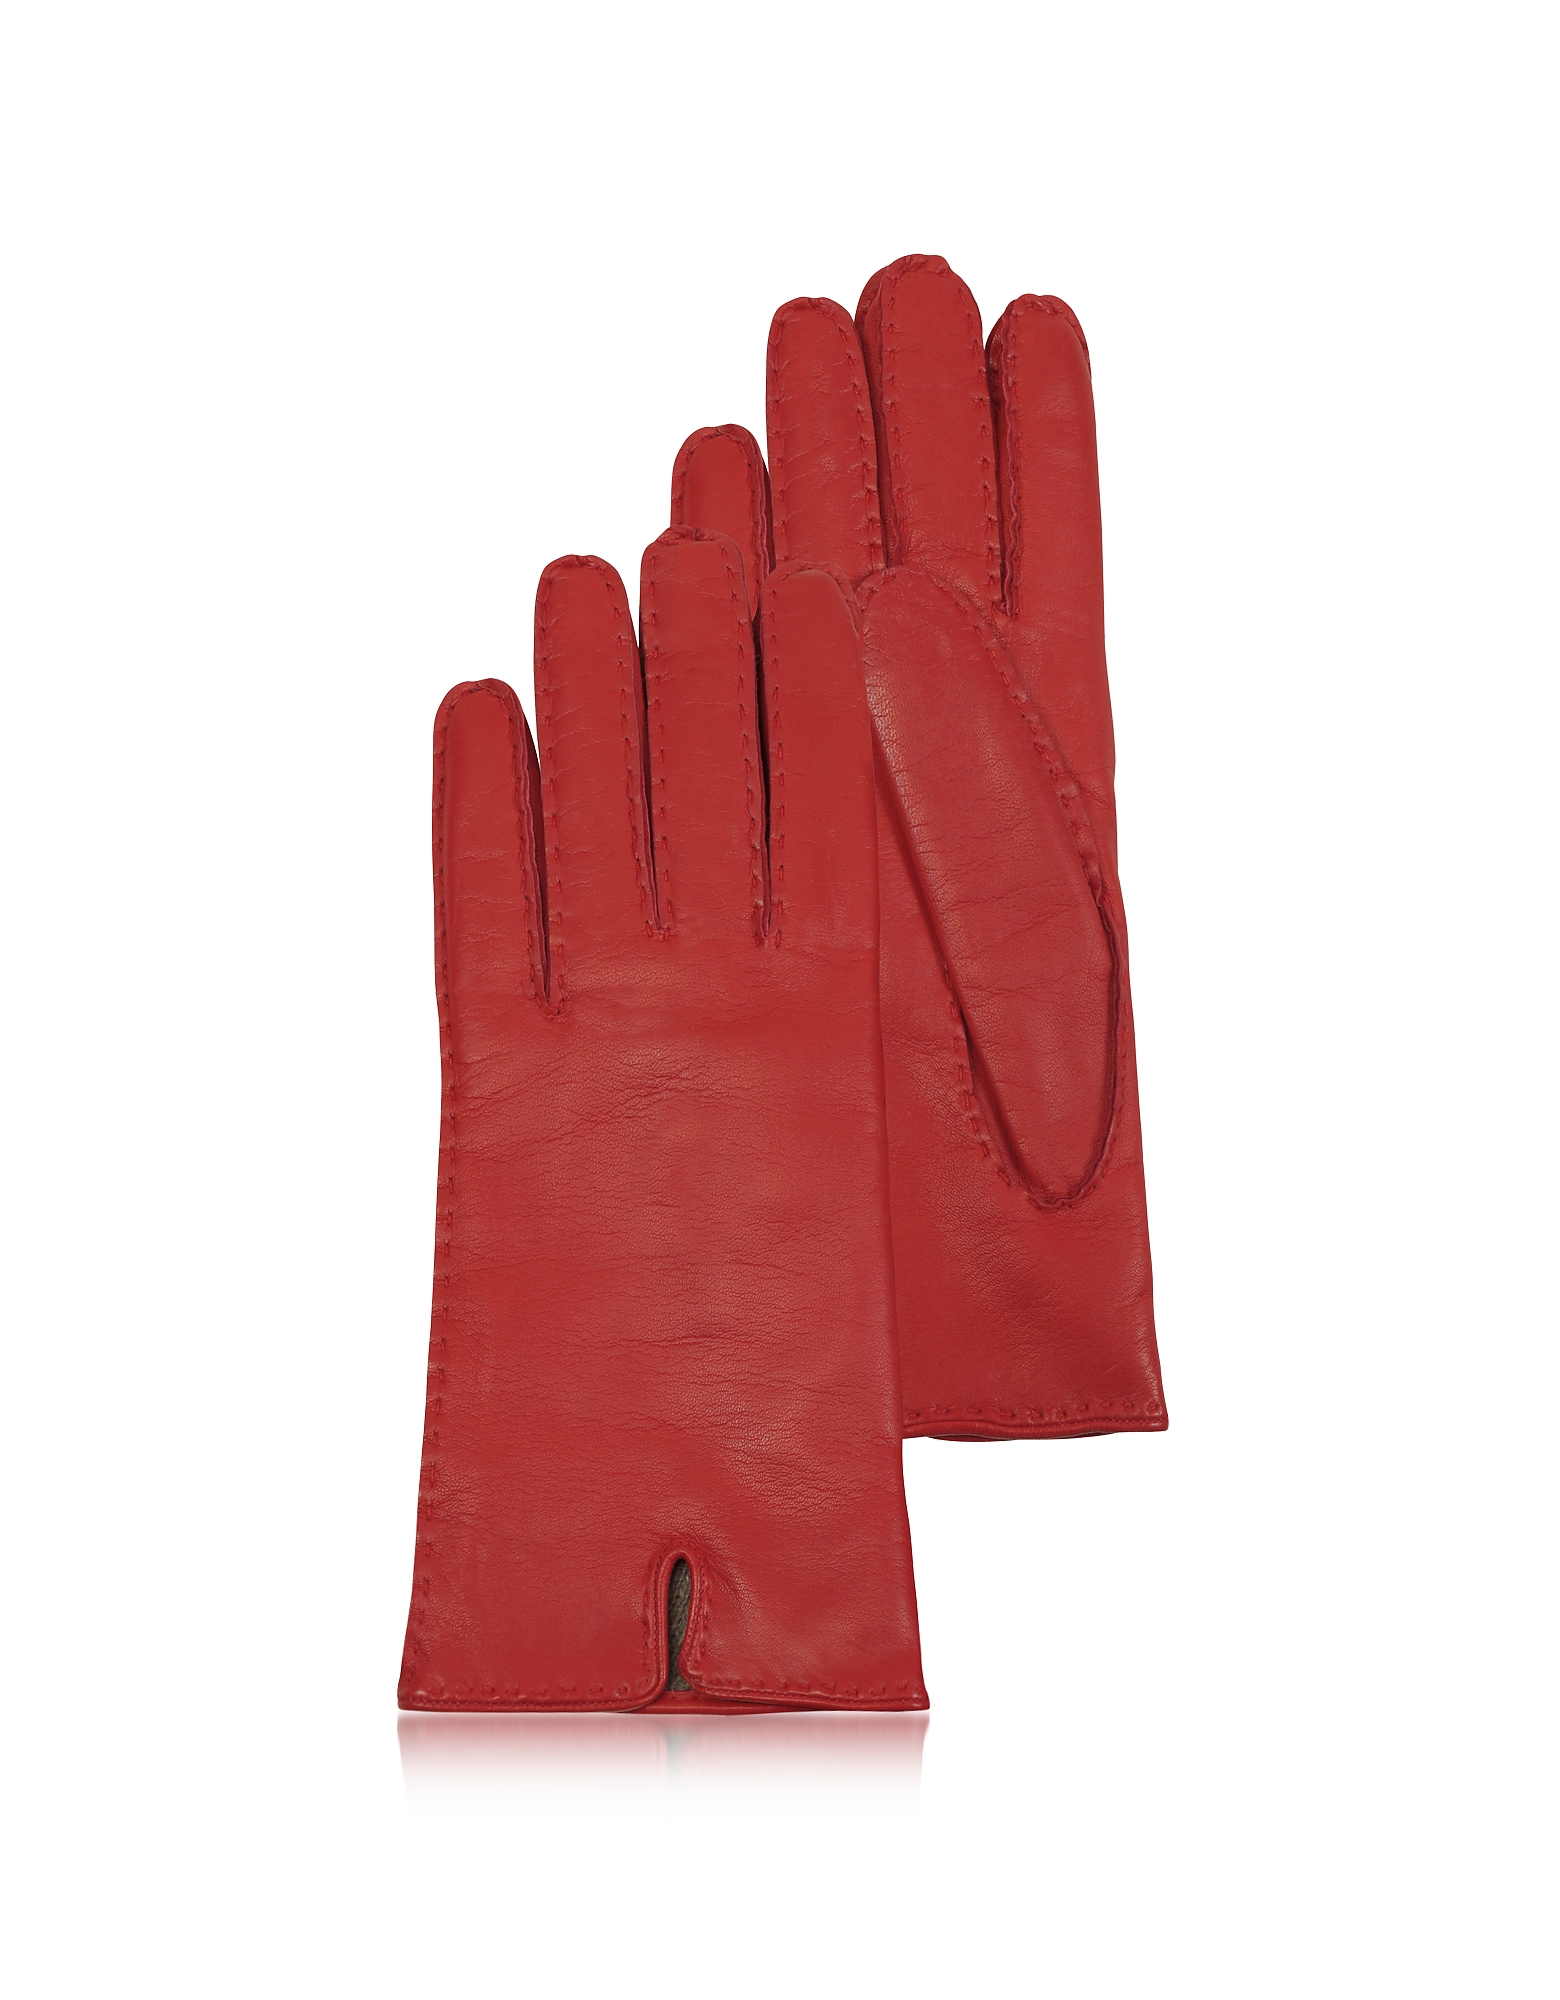 Women's Cashmere Lined Red Italian Leather Gloves от Forzieri.com INT